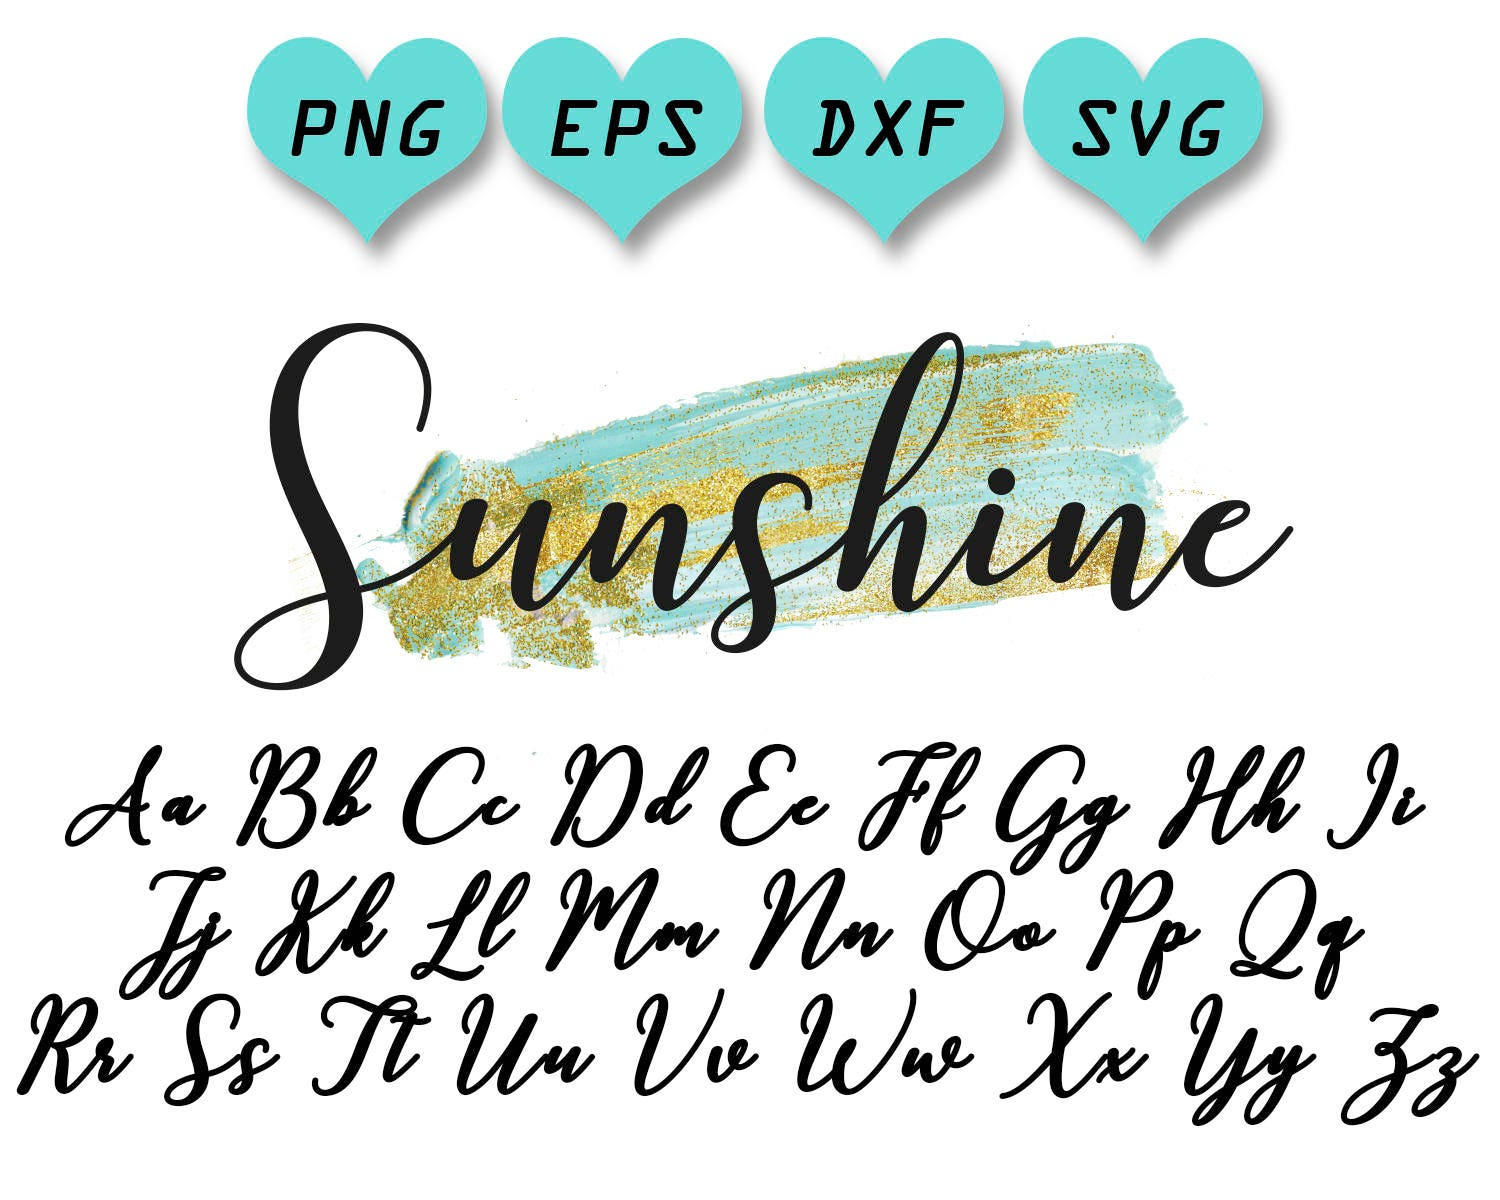 Calligraphy Svg Calligraphy Cut Files Calligraphy Font